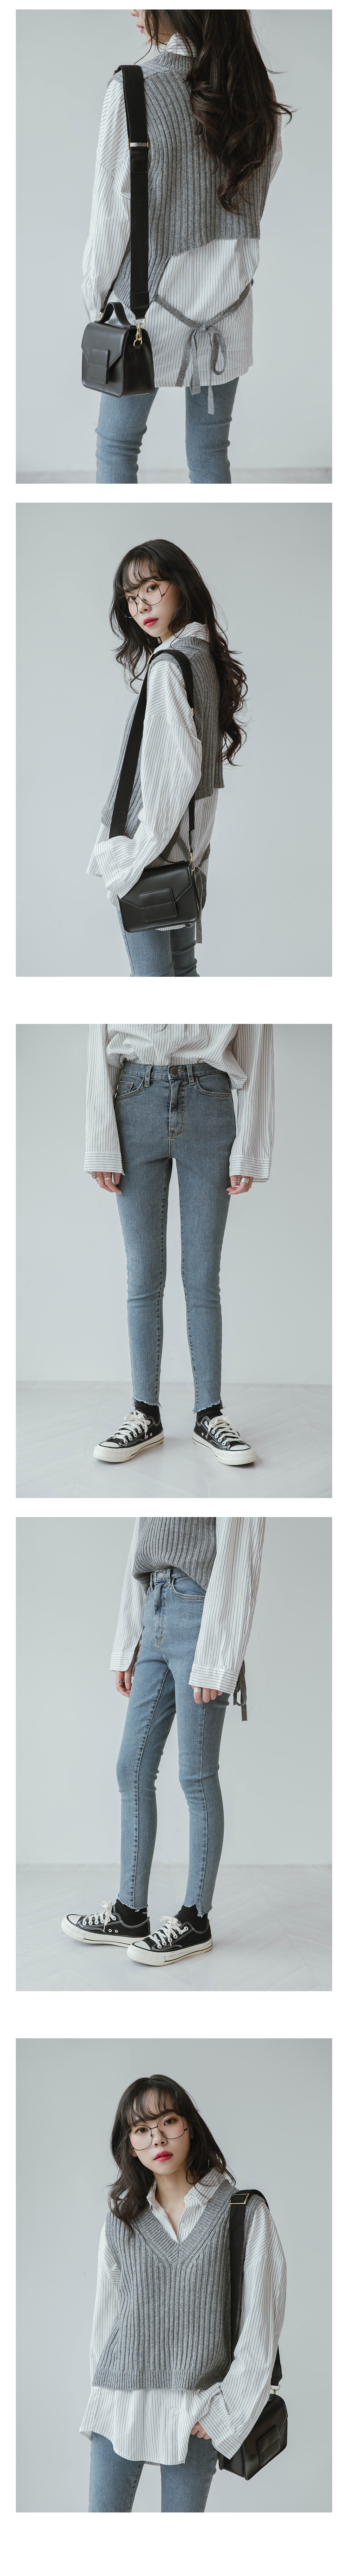 Point cut skinny jeans